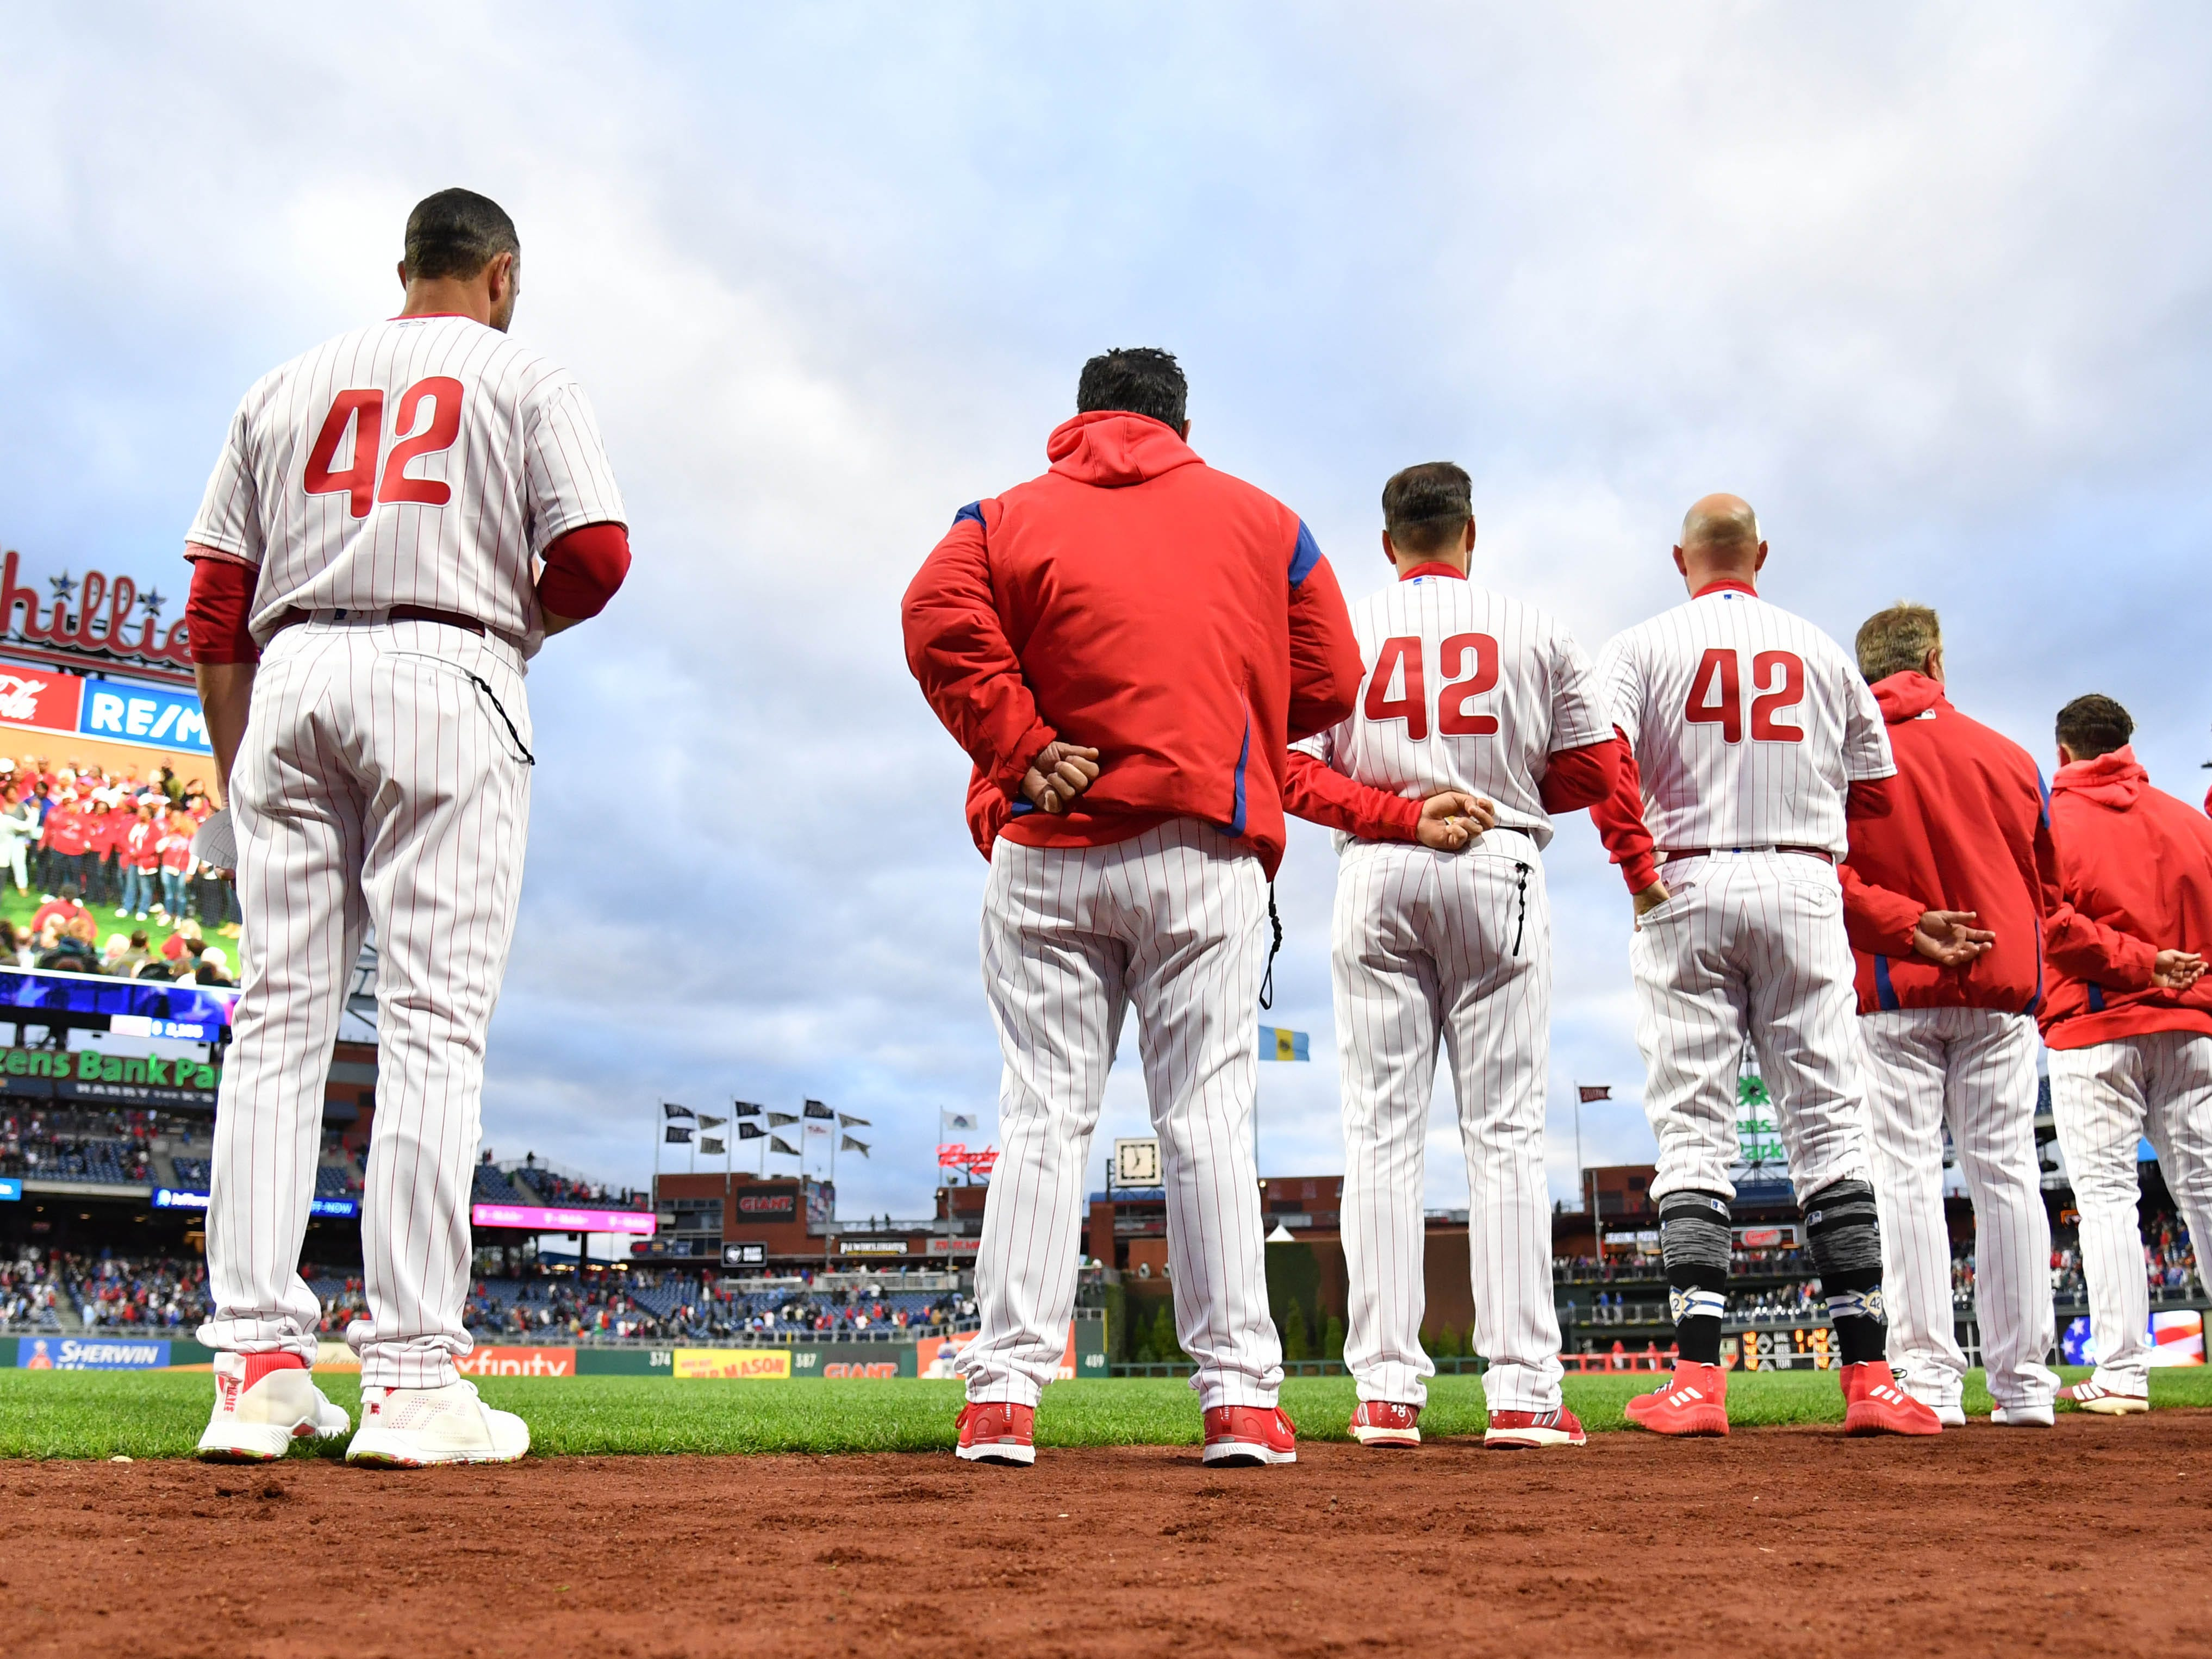 The Phillies line up for the national anthem with the No. 42 on their jersey for Jackie Robinson.